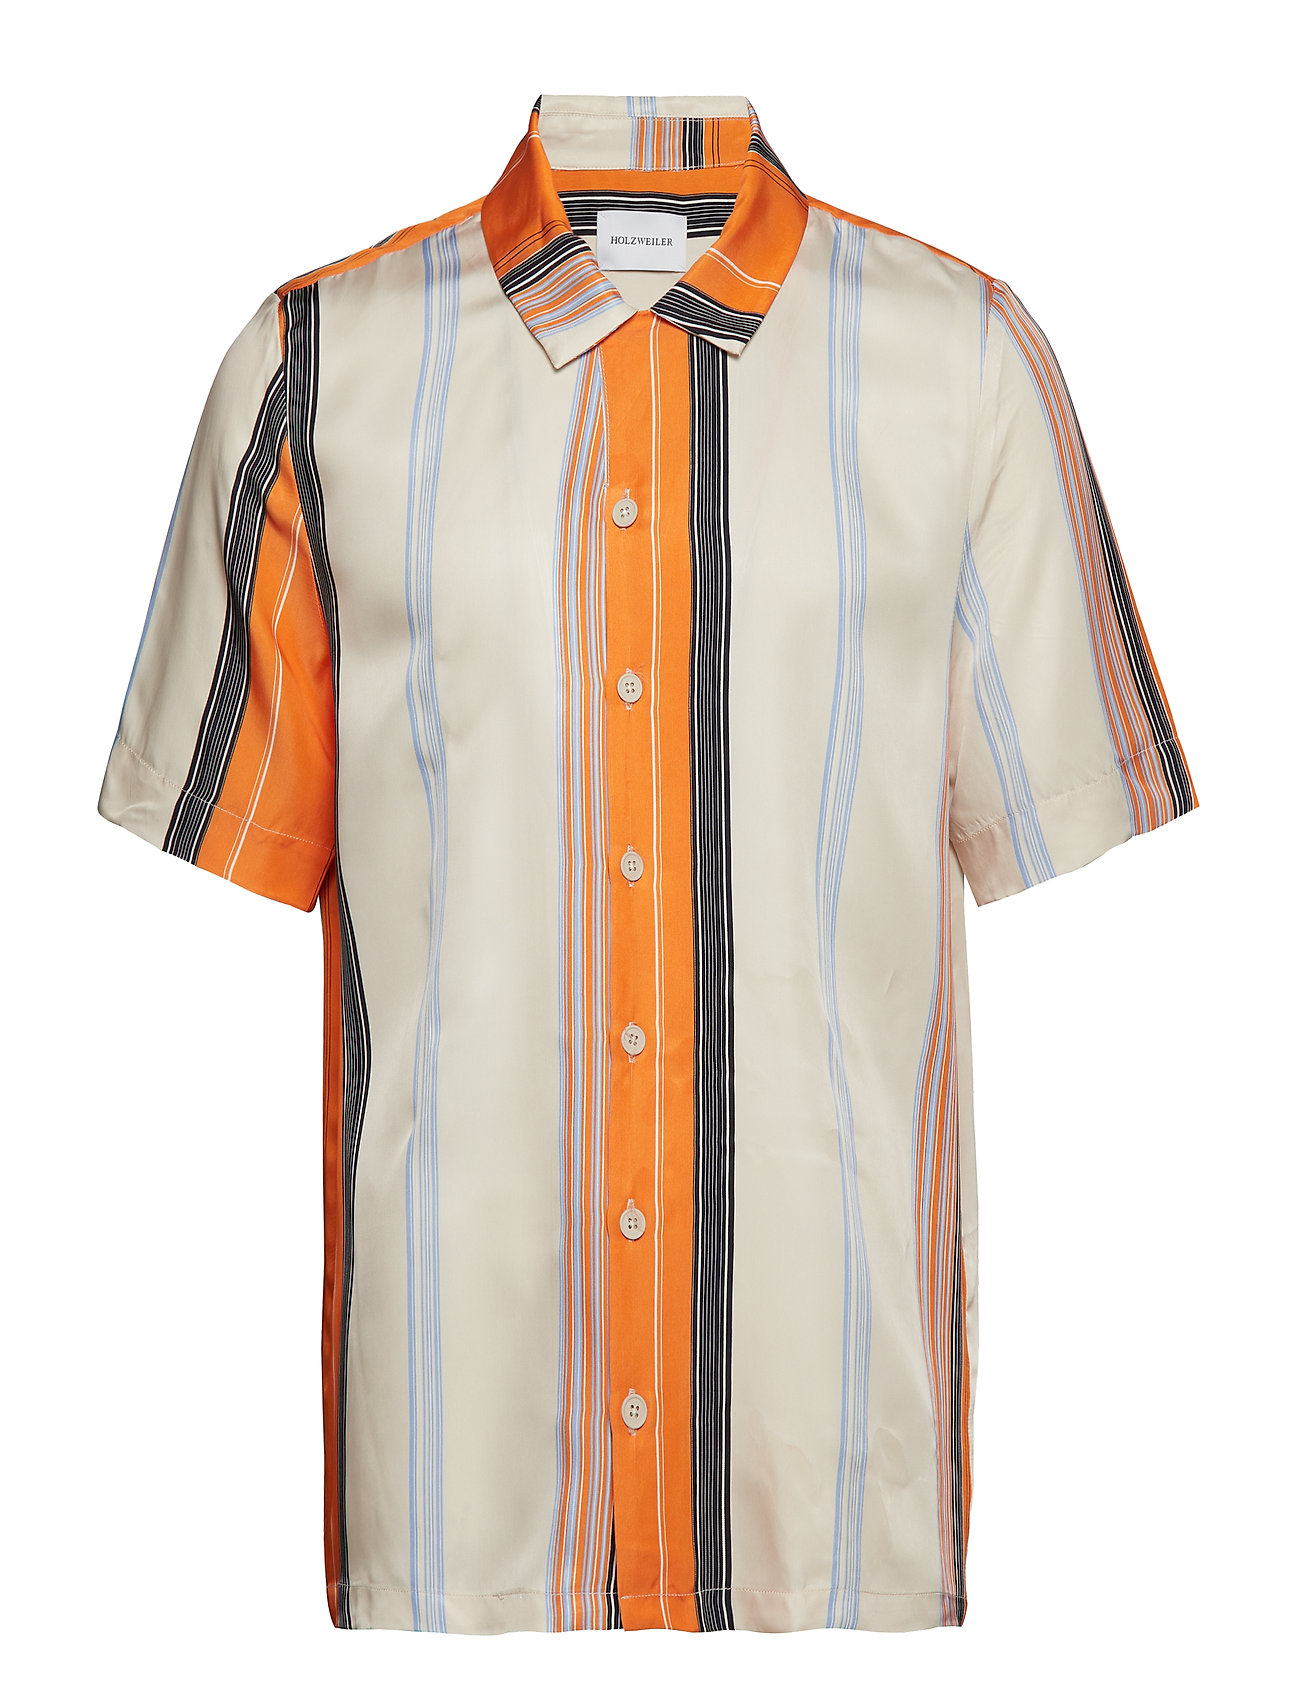 HOLZWEILER BOXY Shirt Short Sleeve - ORANGE STRIPE